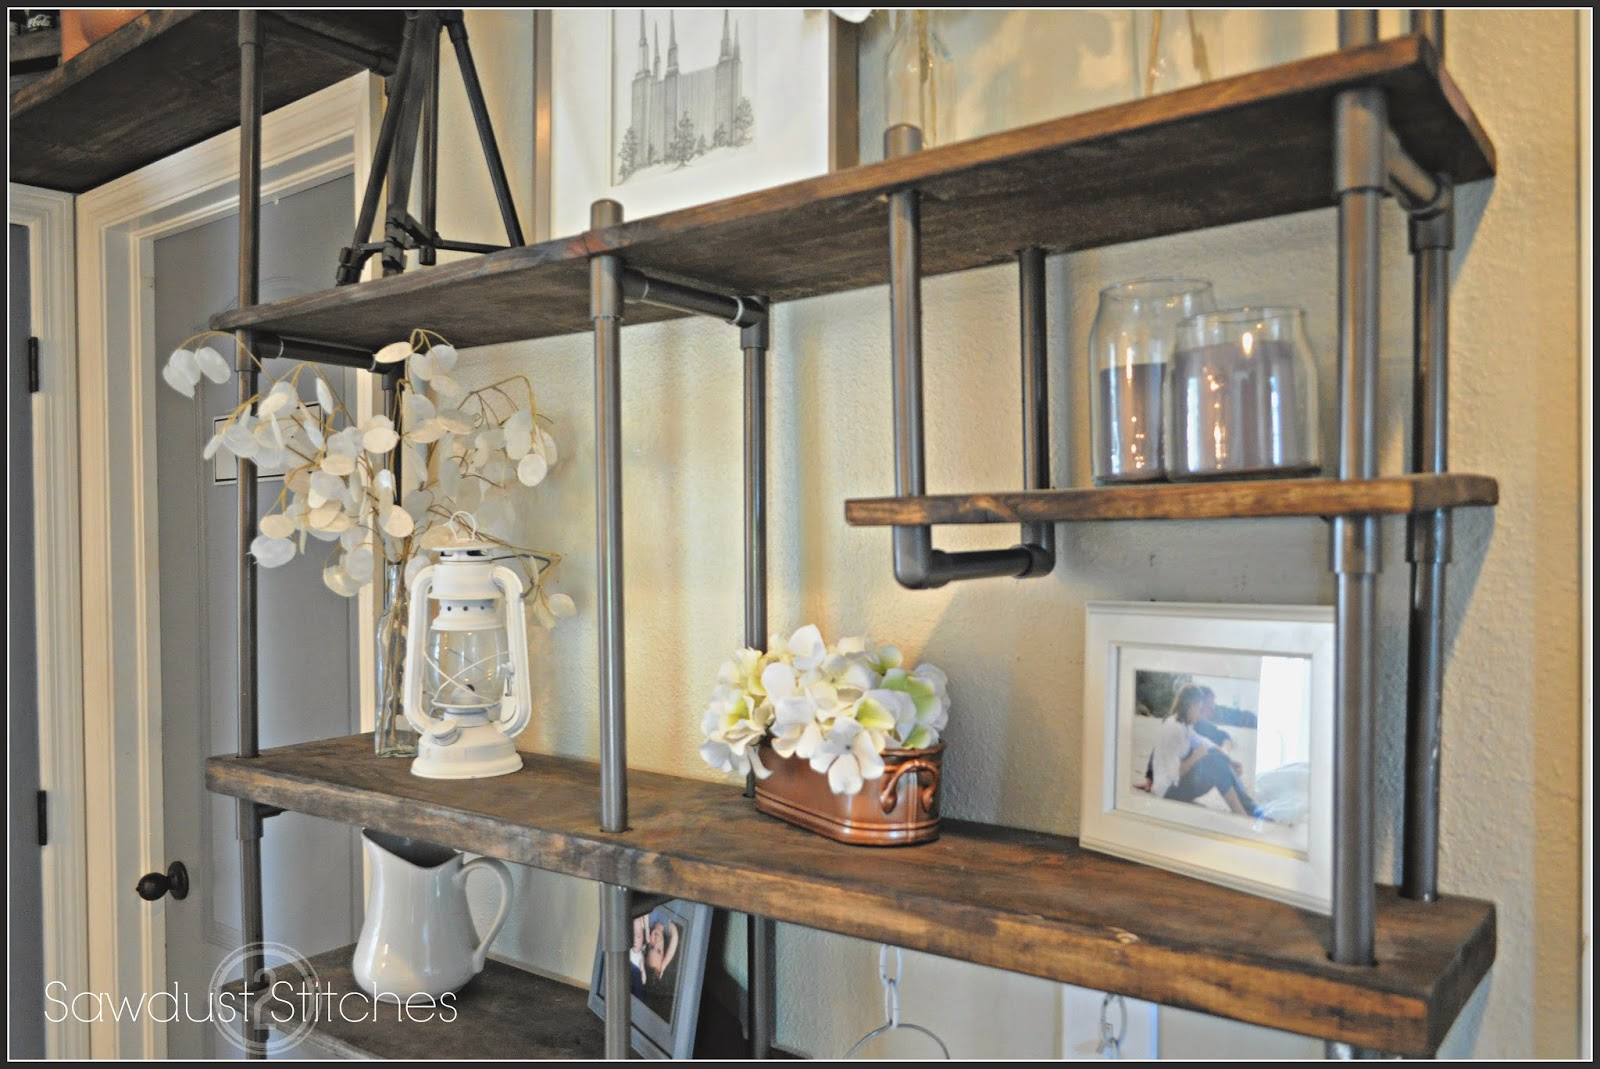 Use PVC Pipe To Build An Inexpensive Industrial Style Shelf, Sawdust 2  Stitches On